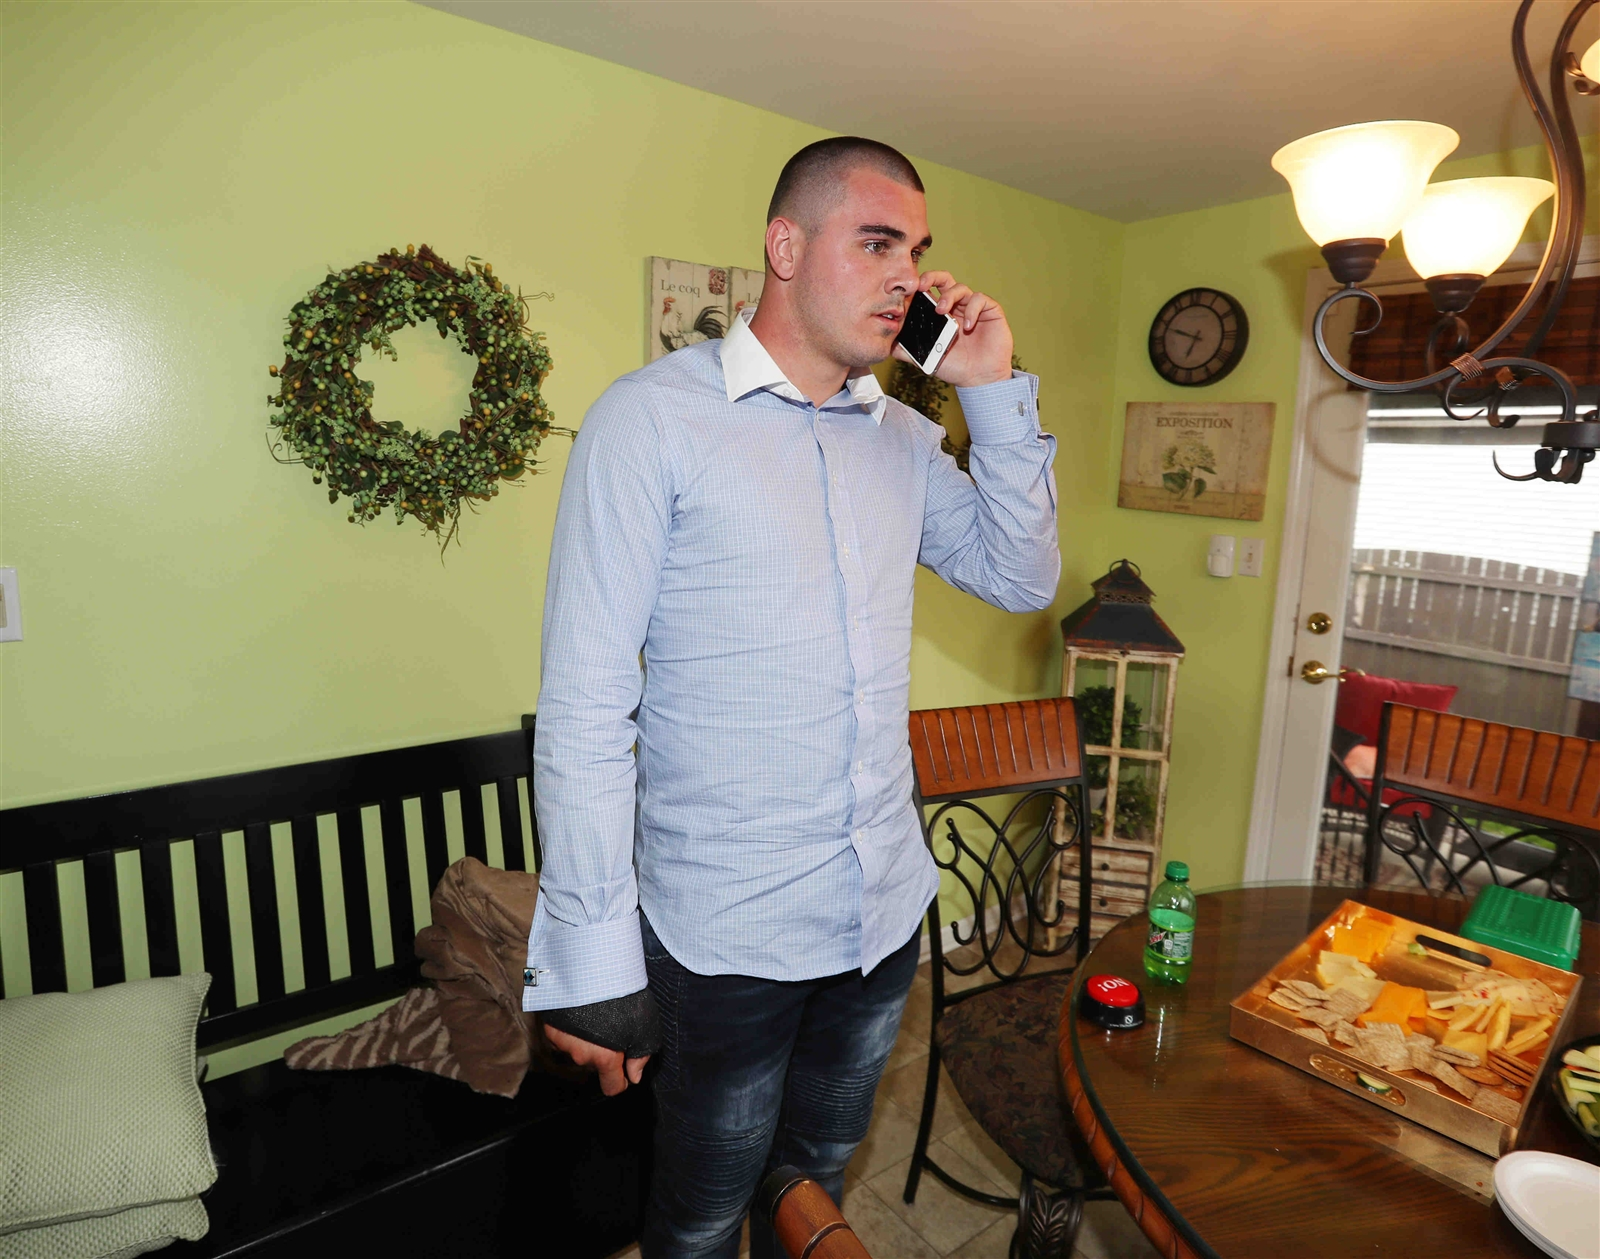 Chad Kelly gets a phone call from Denver letting him know the Broncos planned to draft him with the last pick if he is still available.